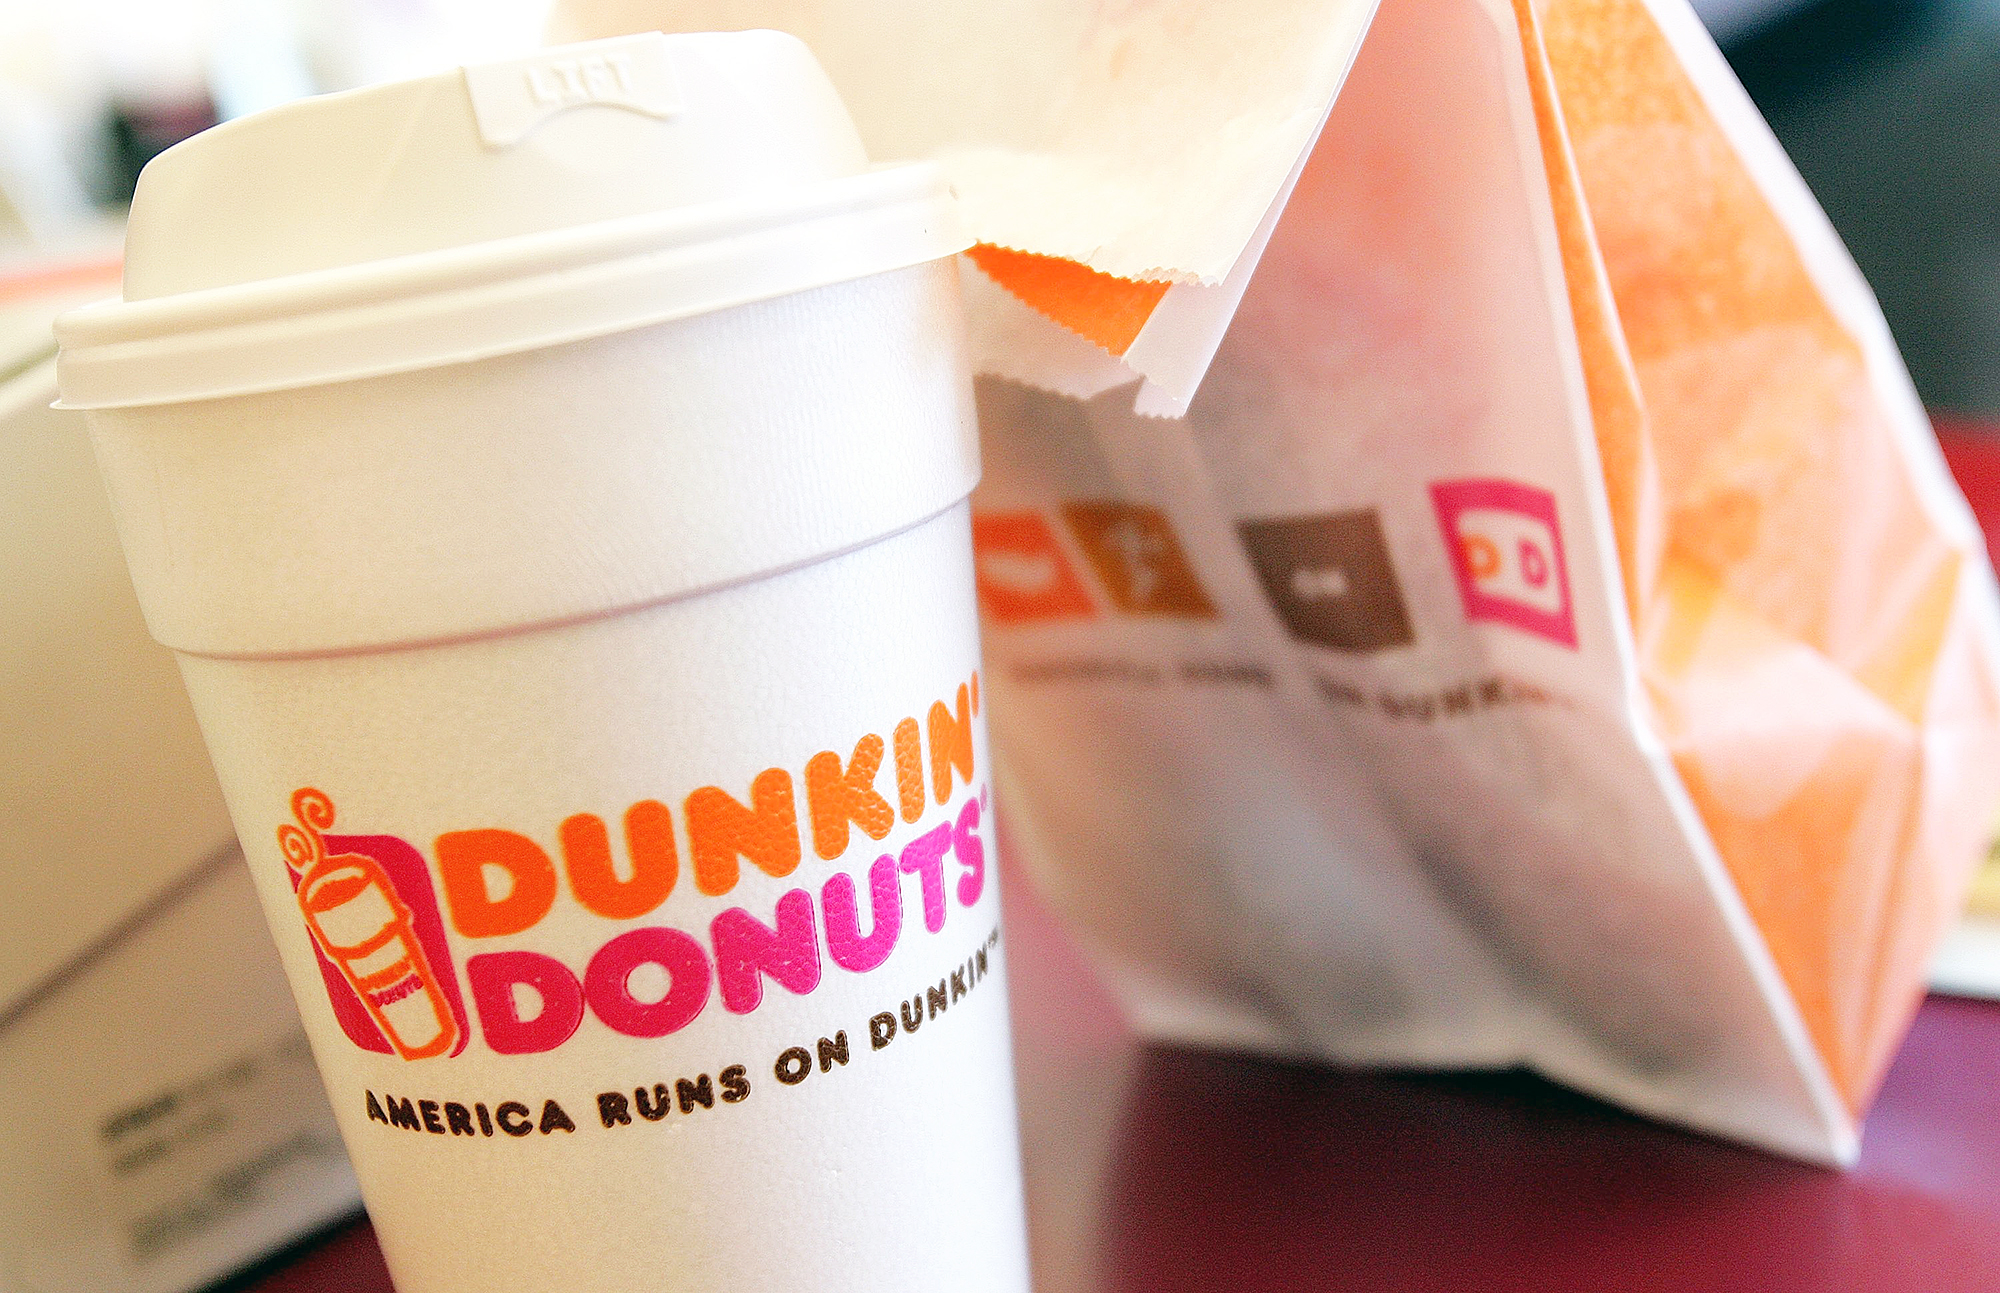 One Dunkin Donuts asks customers to report workers yelling in foreign language